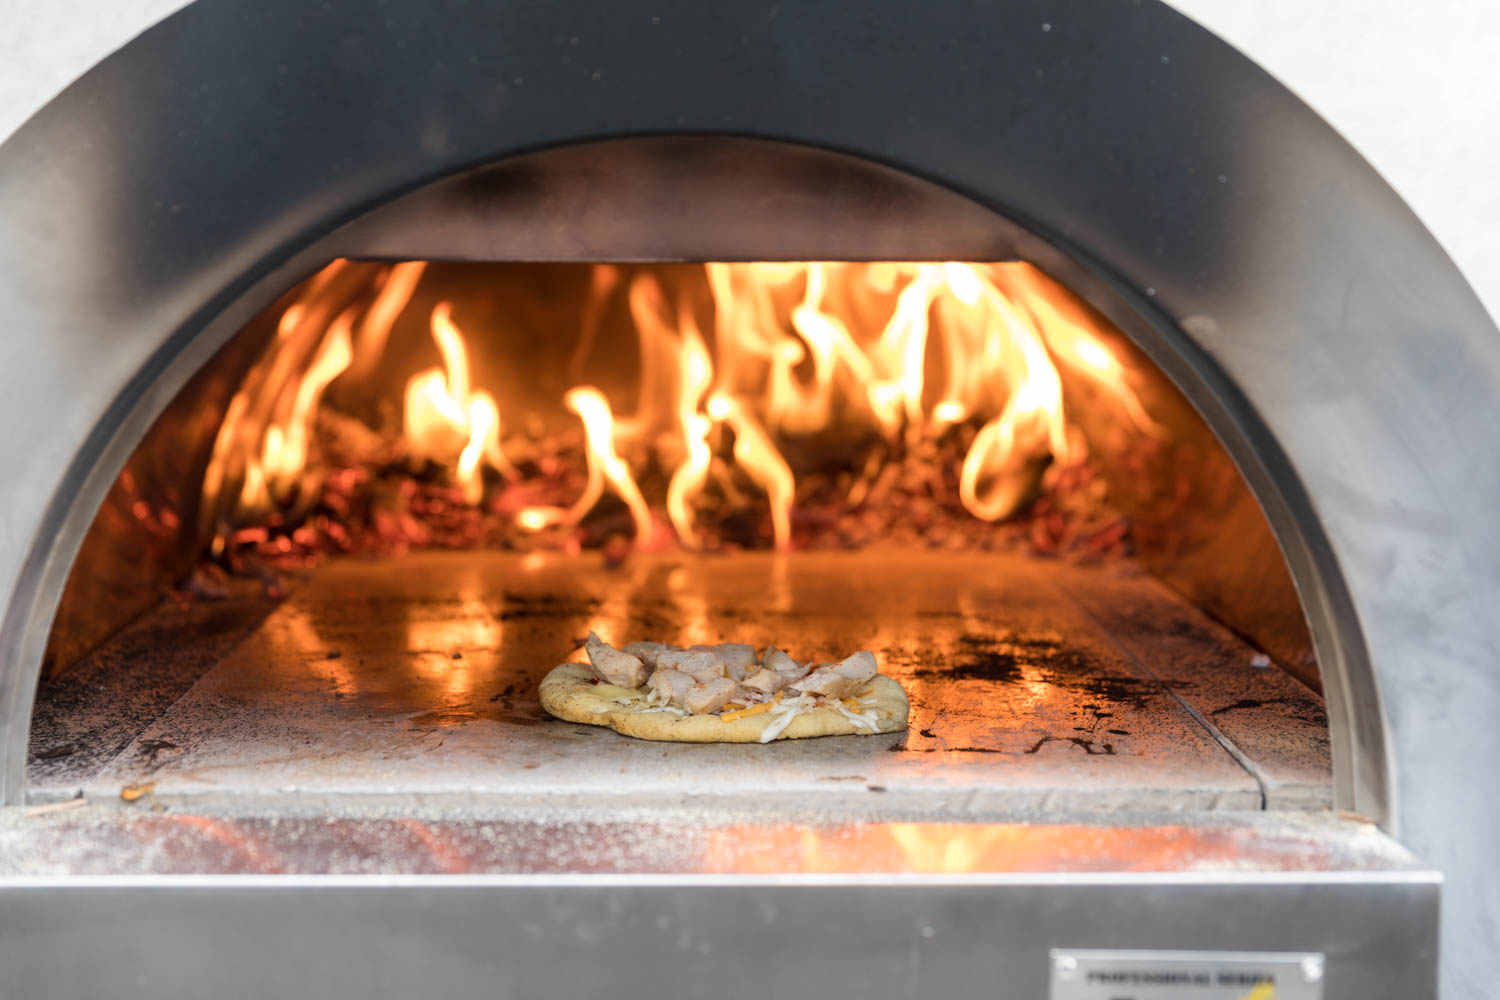 A pizza bakes in a wood fired oven—going Italian style